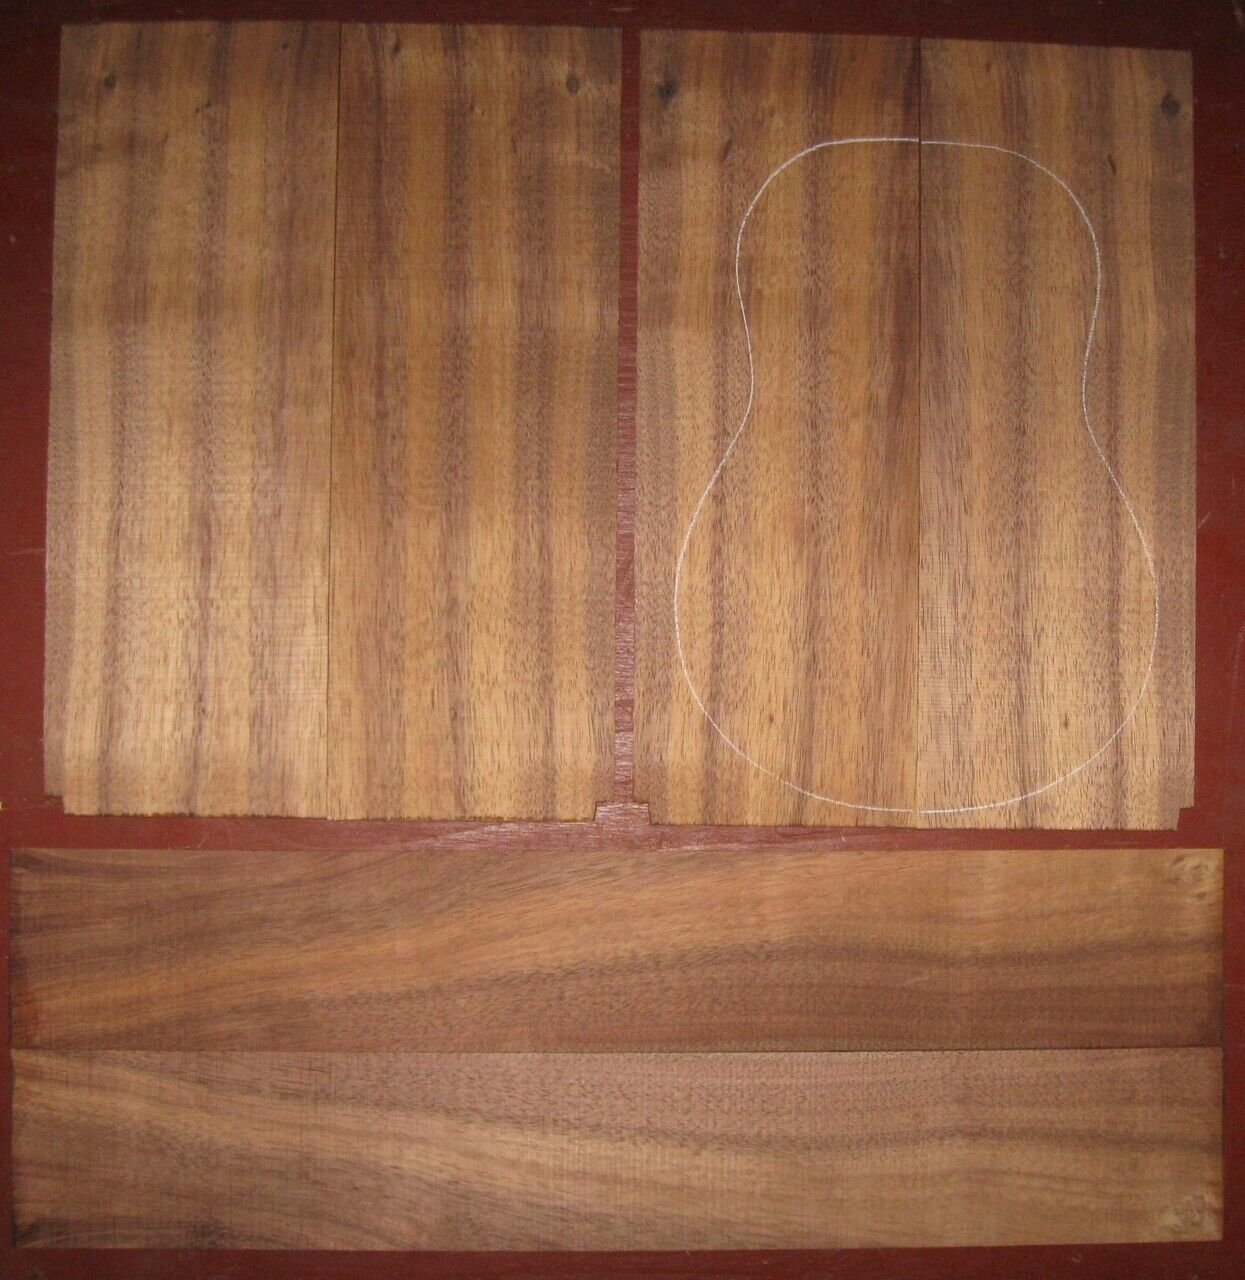 Hawaiian Koa Tenor Uke Set Ukulele Wood - Luthier Tonewood - $72.00